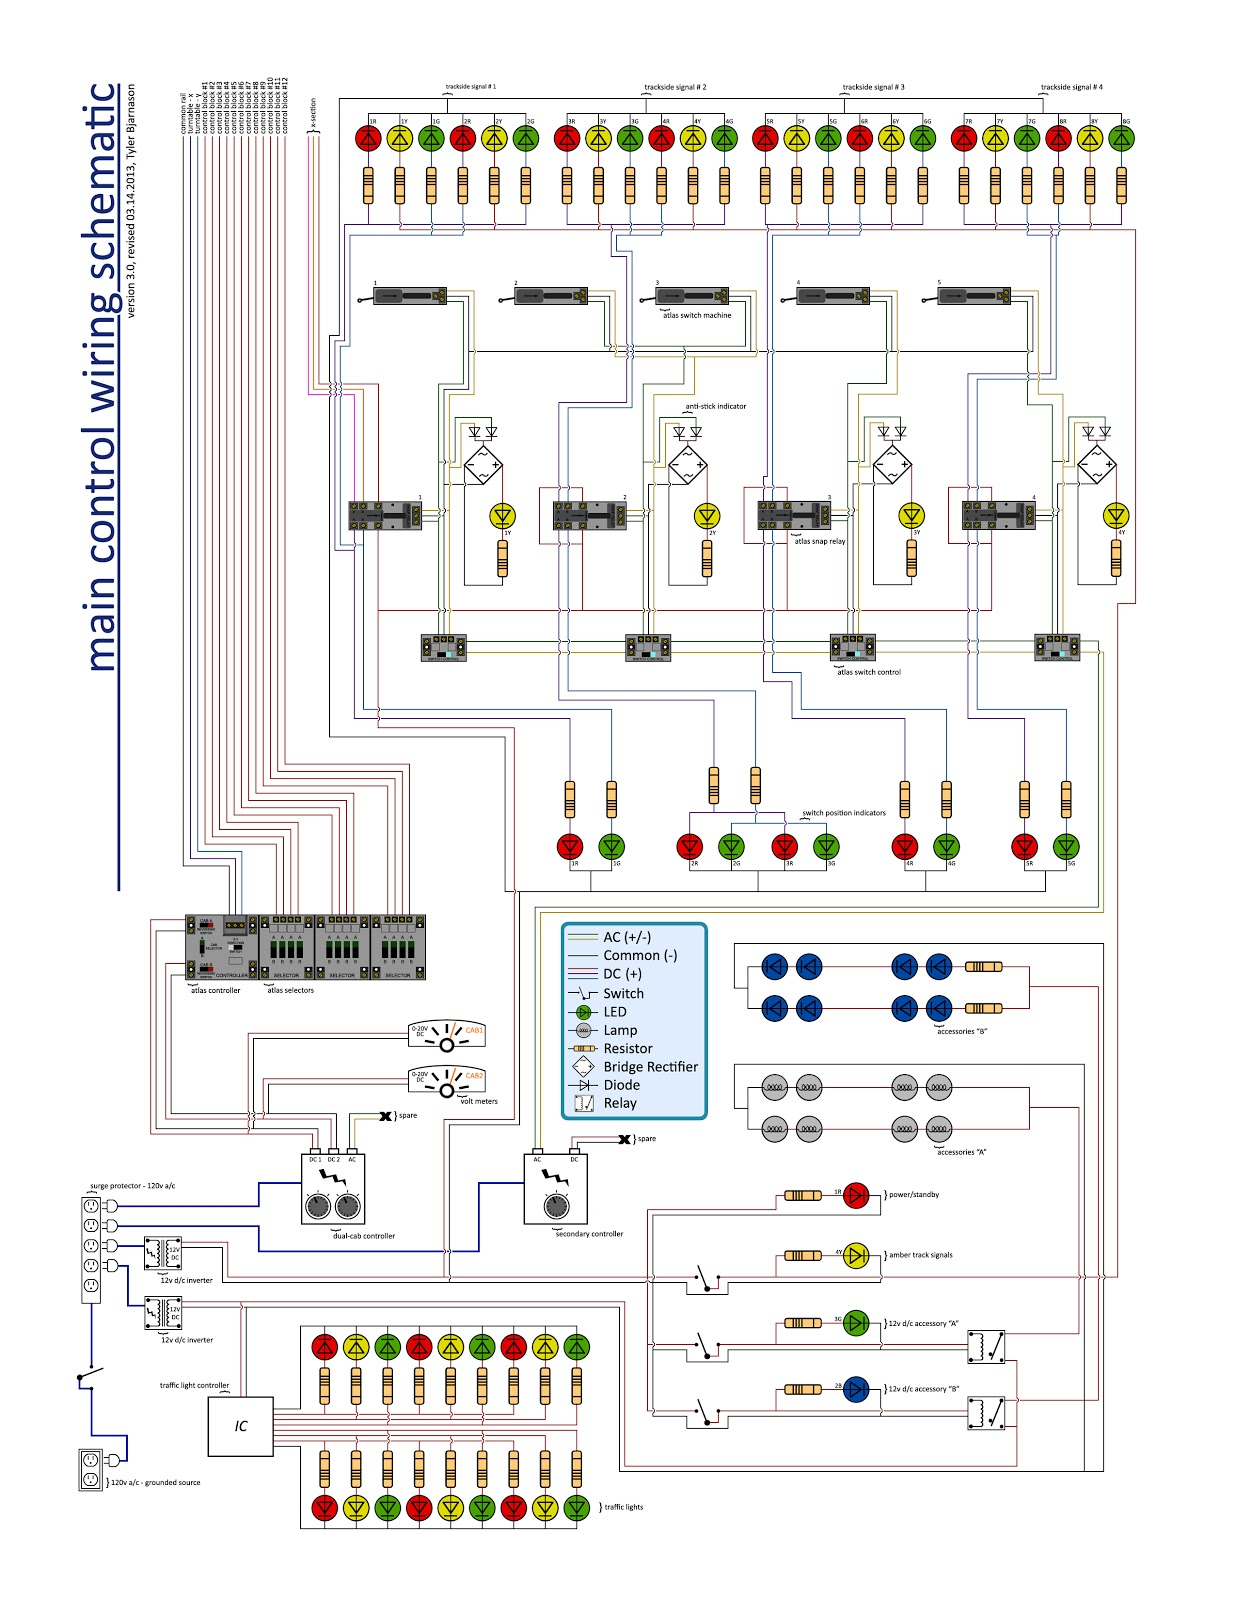 completed model train control panel wiring schematic for ty s model railroad [ 1236 x 1600 Pixel ]